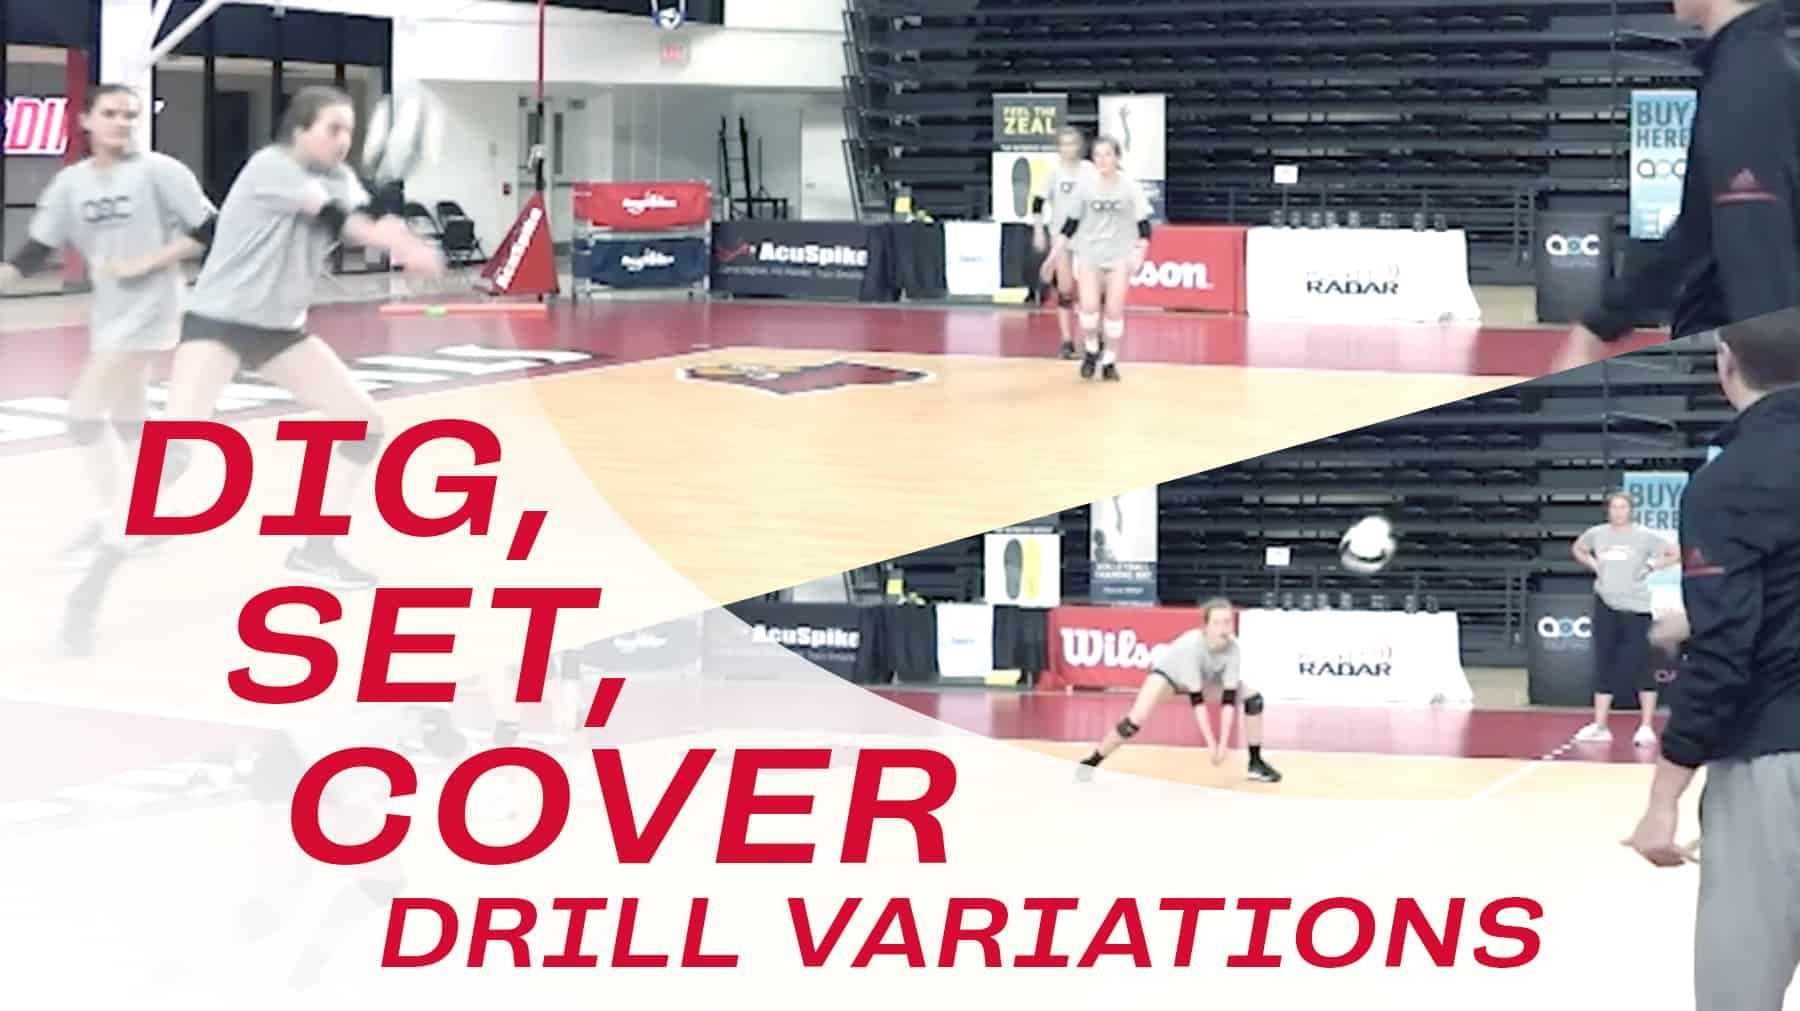 Dig Set Cover Drill Variations Coaching Volleyball Volleyball Drills Drill